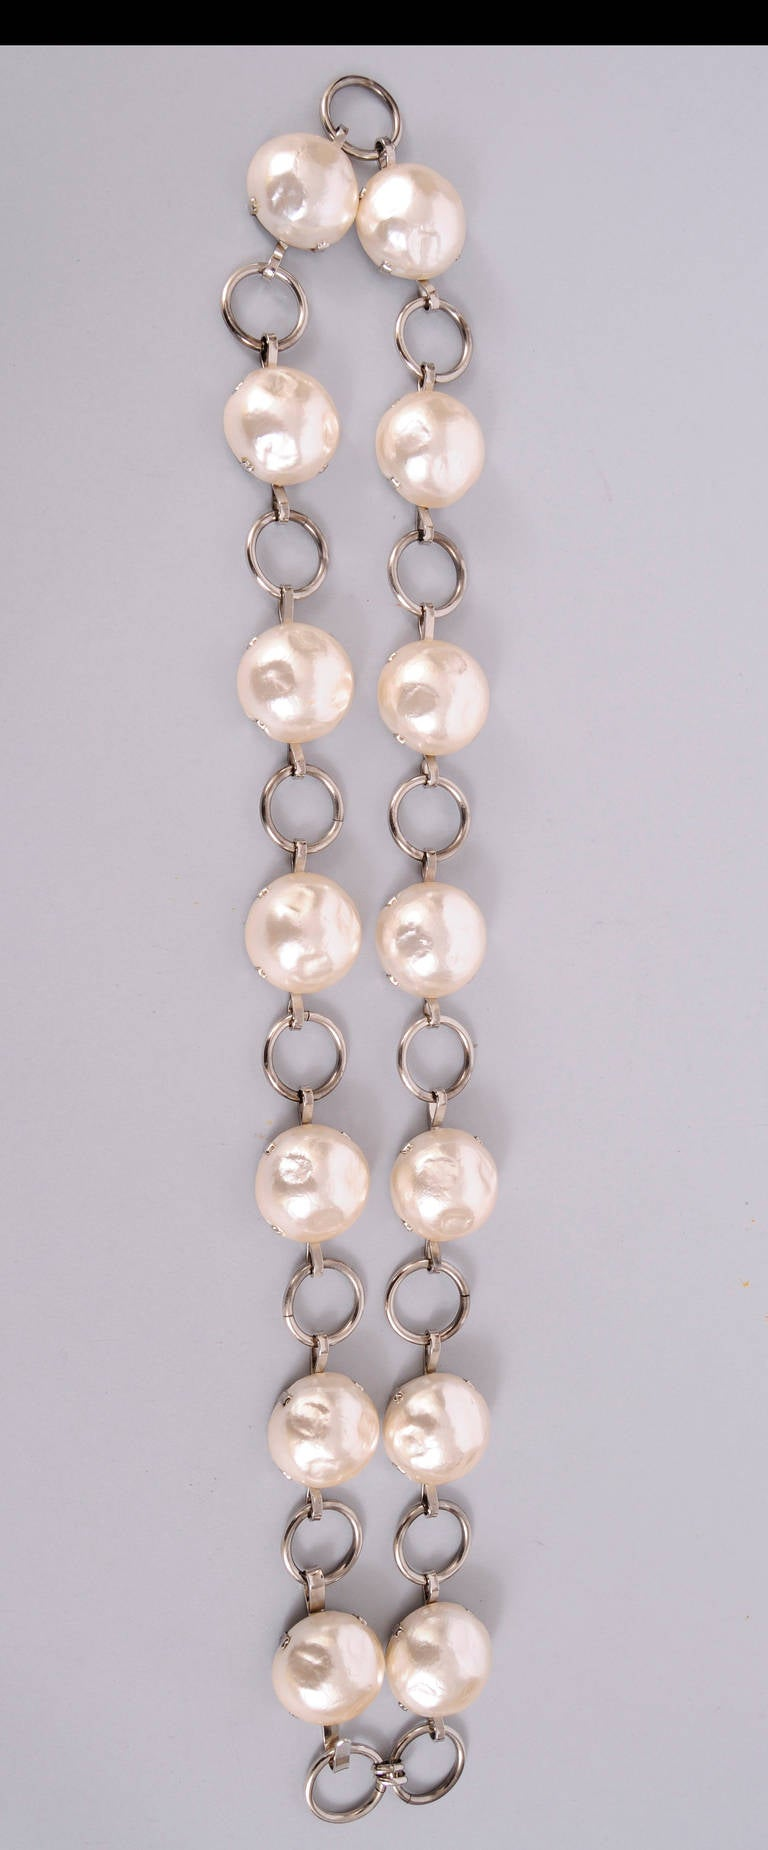 Contemporary 1970's Jean Patou Large Pearl Link Belt or Necklace For Sale